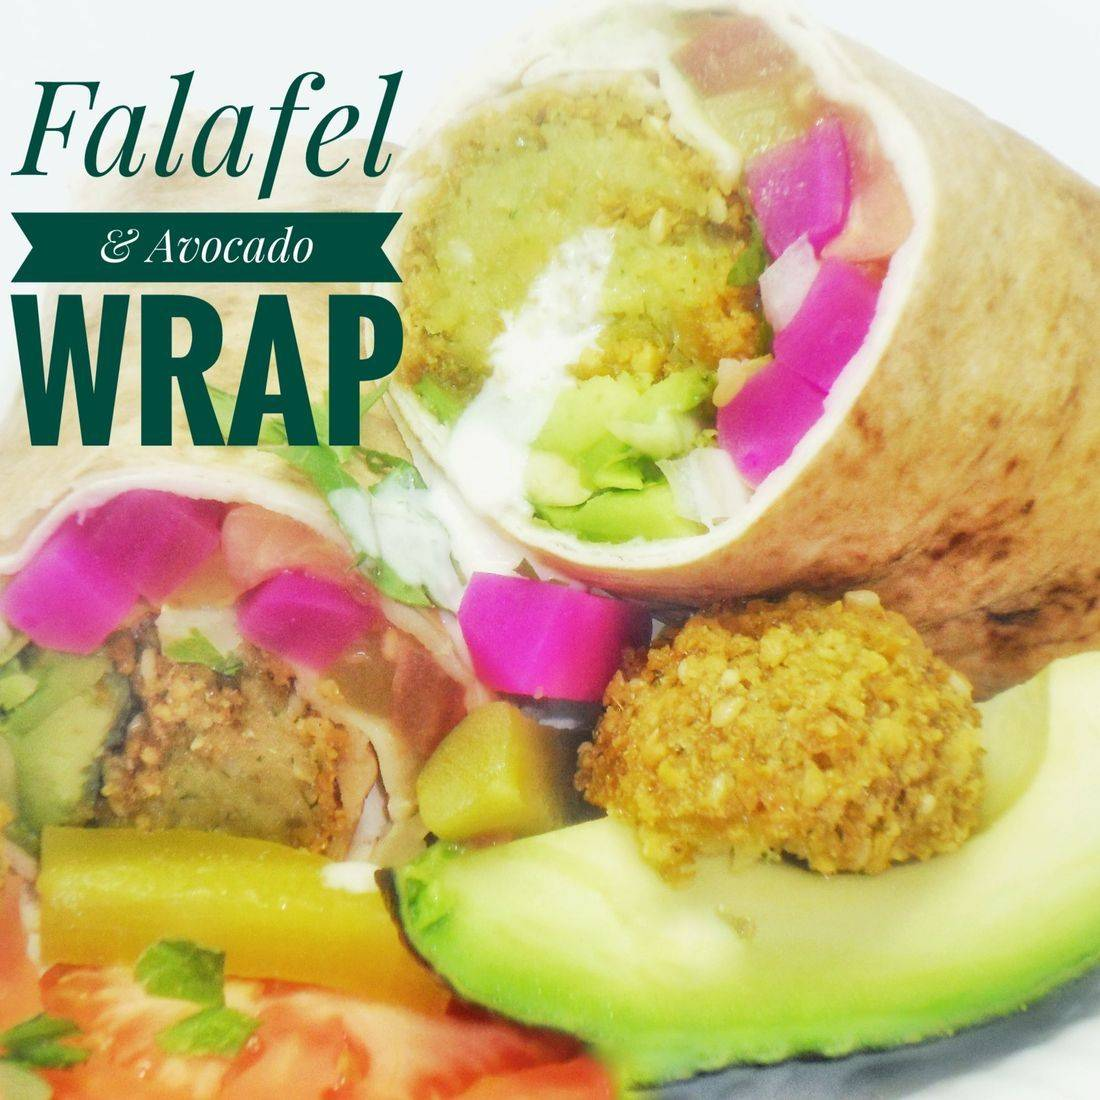 Falafel & Avocado Wrap